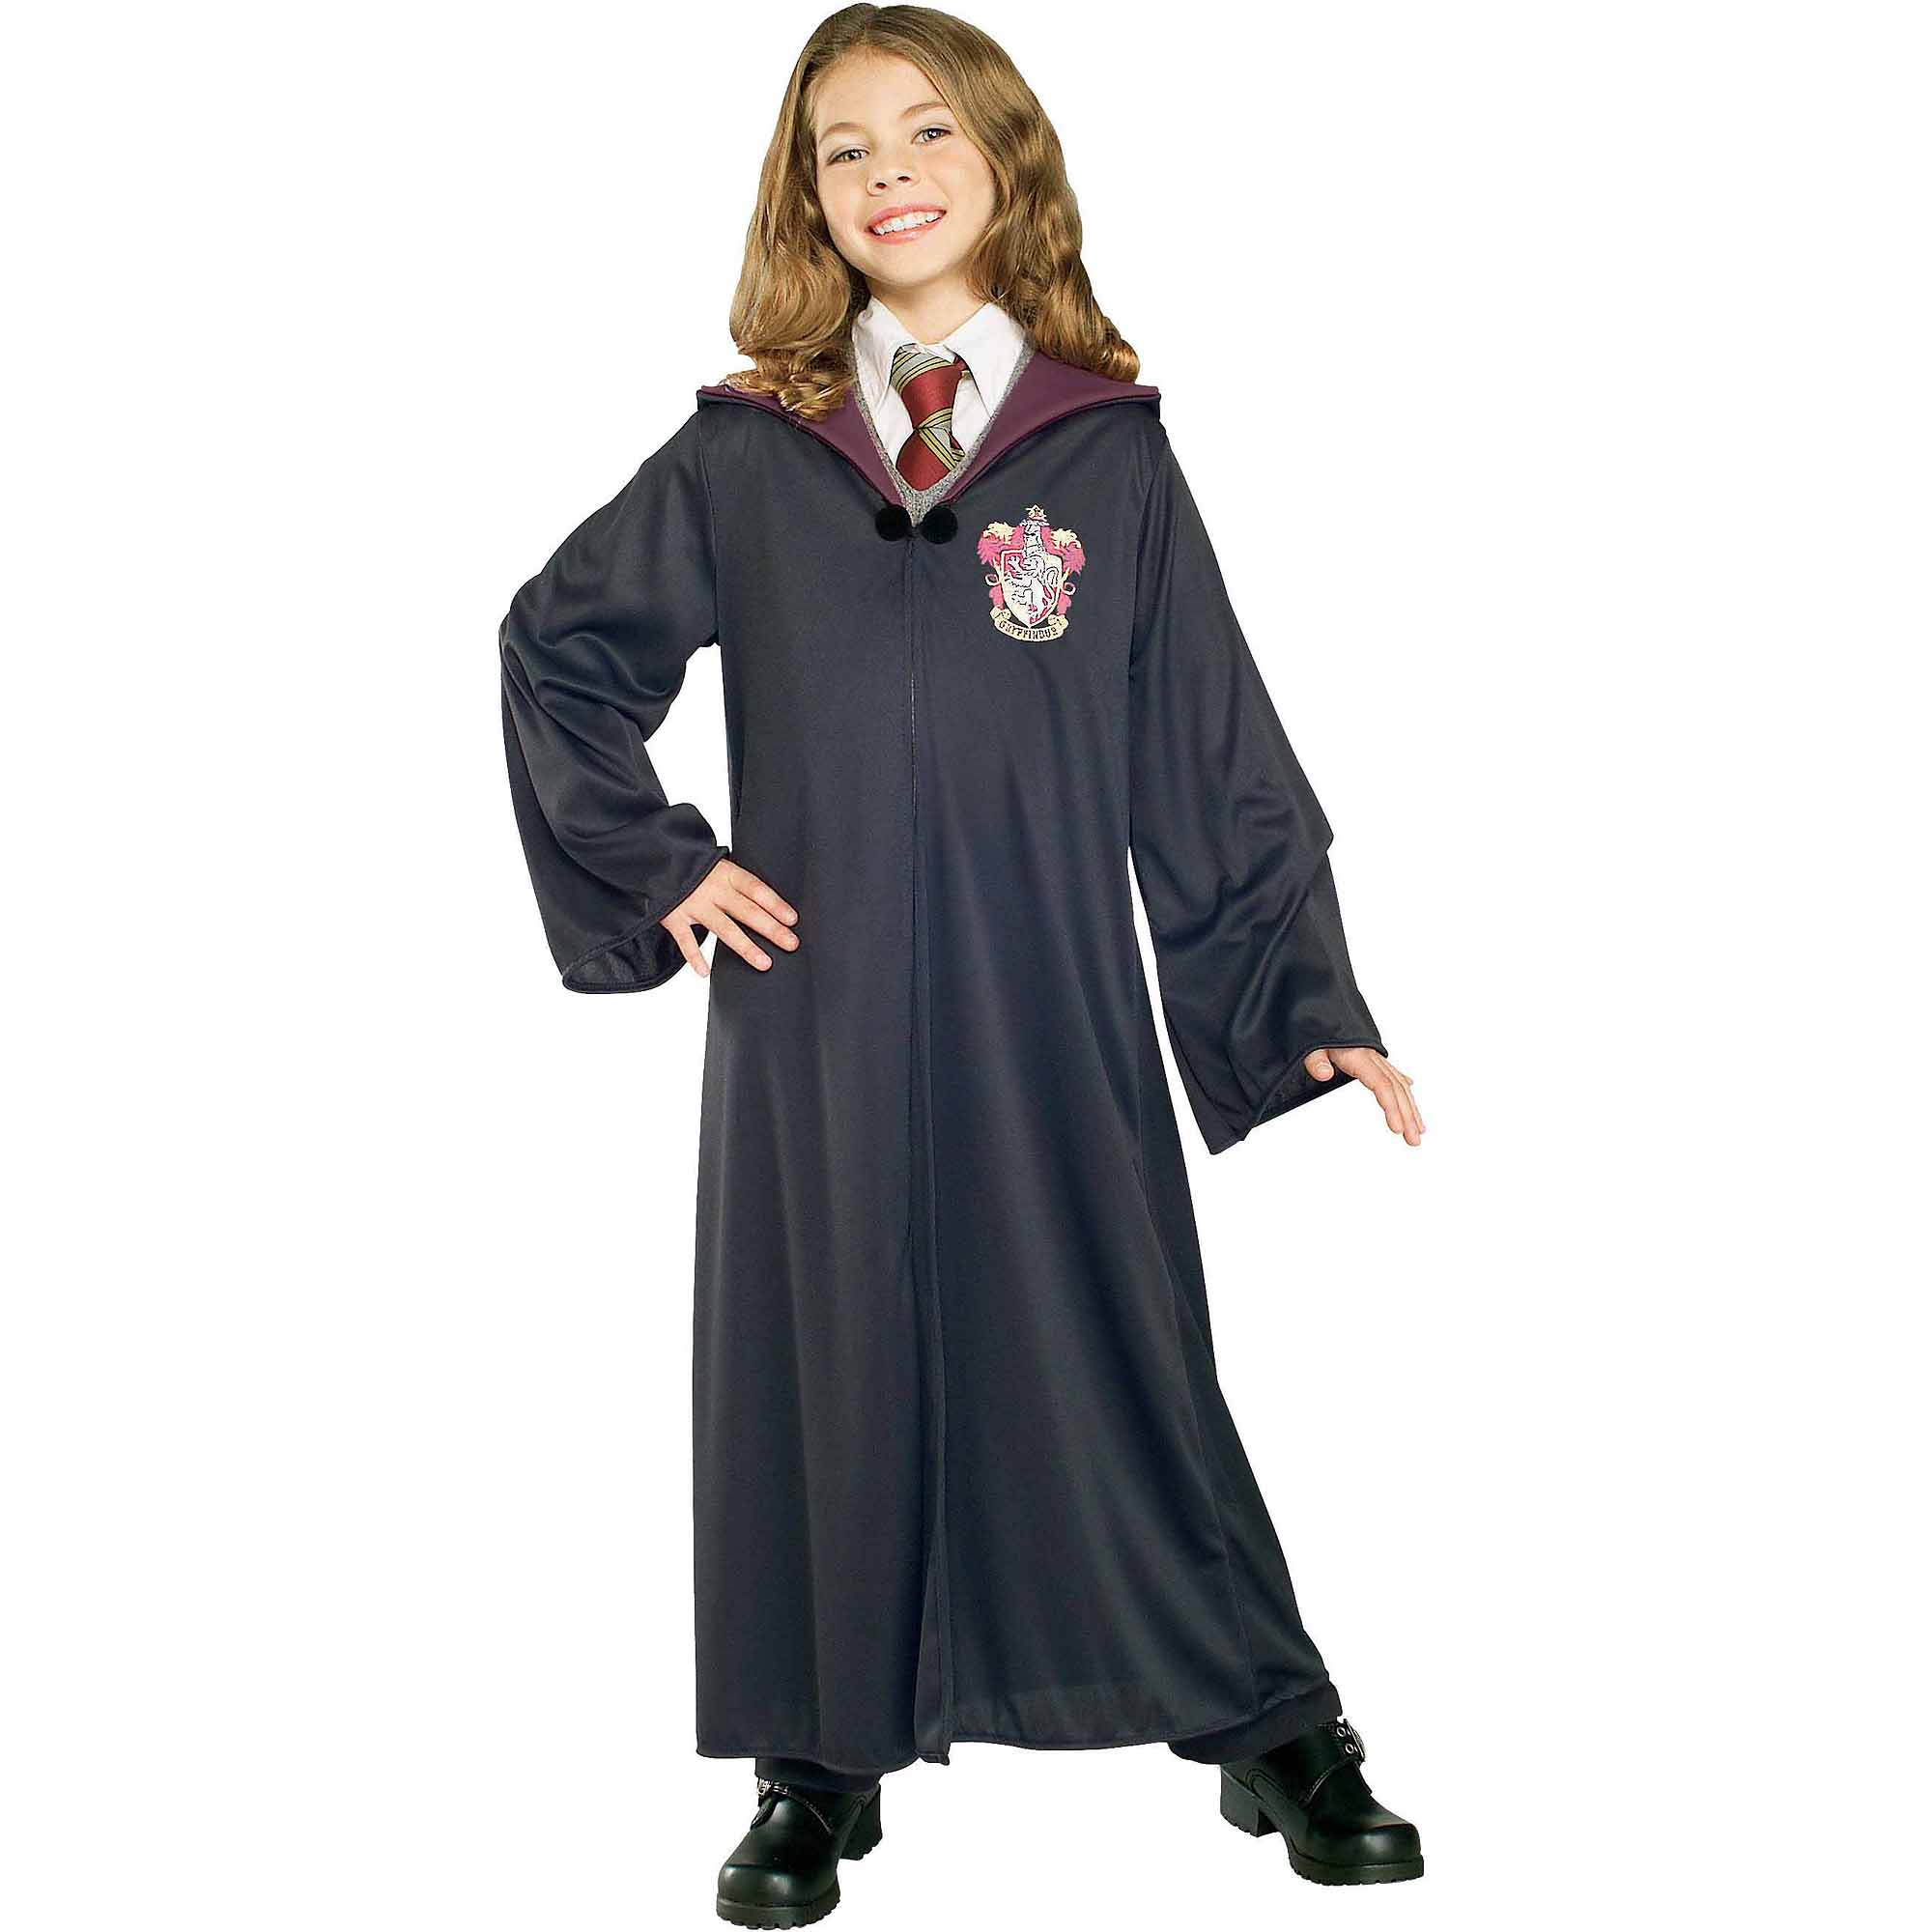 Harry Potter Gryffindor Robe Child Halloween Costume  sc 1 st  Walmart & Harry Potter Gryffindor Robe Child Halloween Costume - Walmart.com